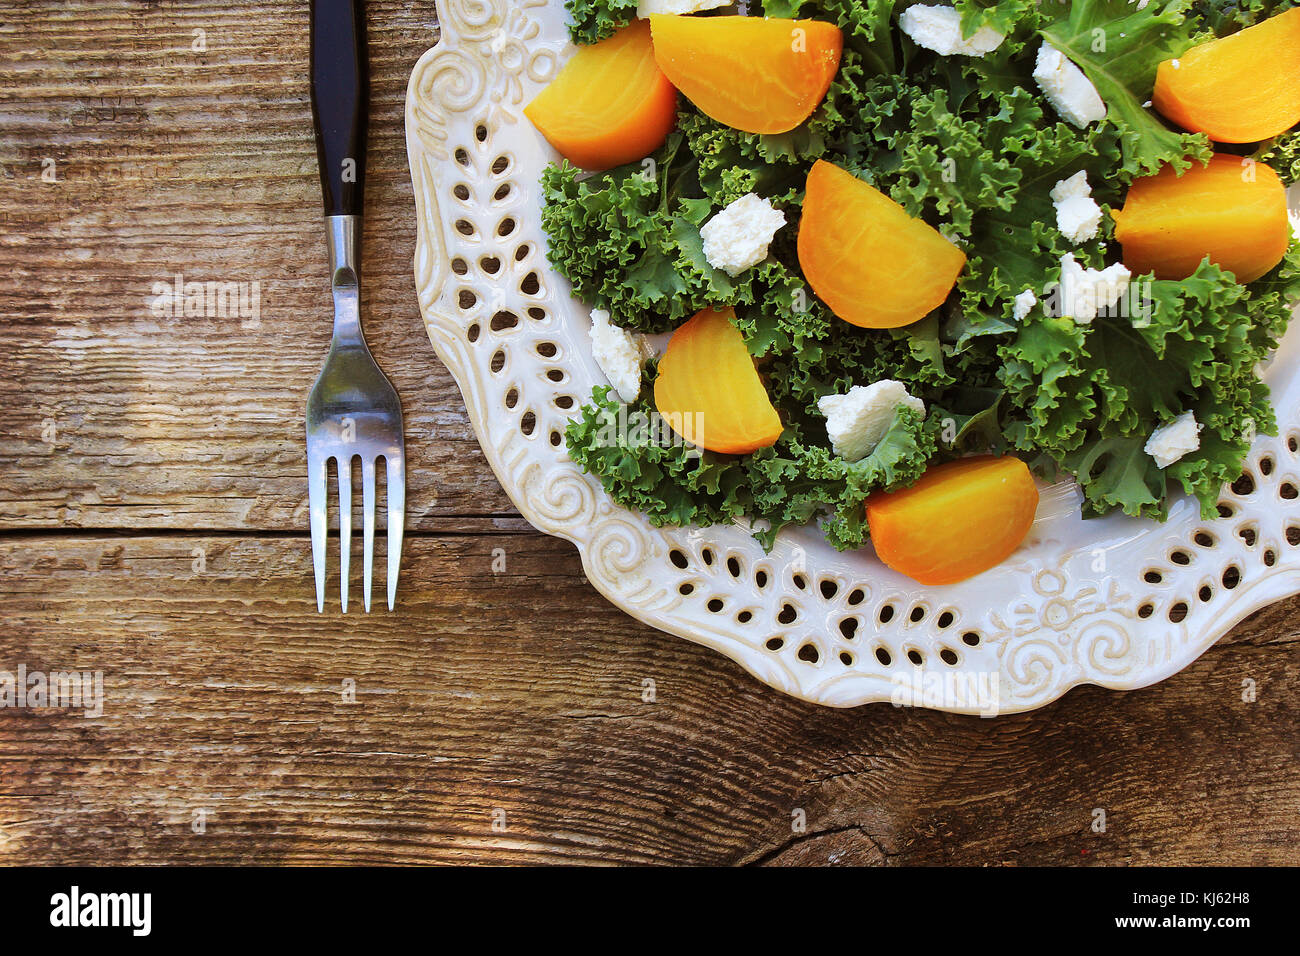 Healthy Beet Salad with fresh kale lettuce, nuts, feta cheese on wooden background. Top view - Stock Image